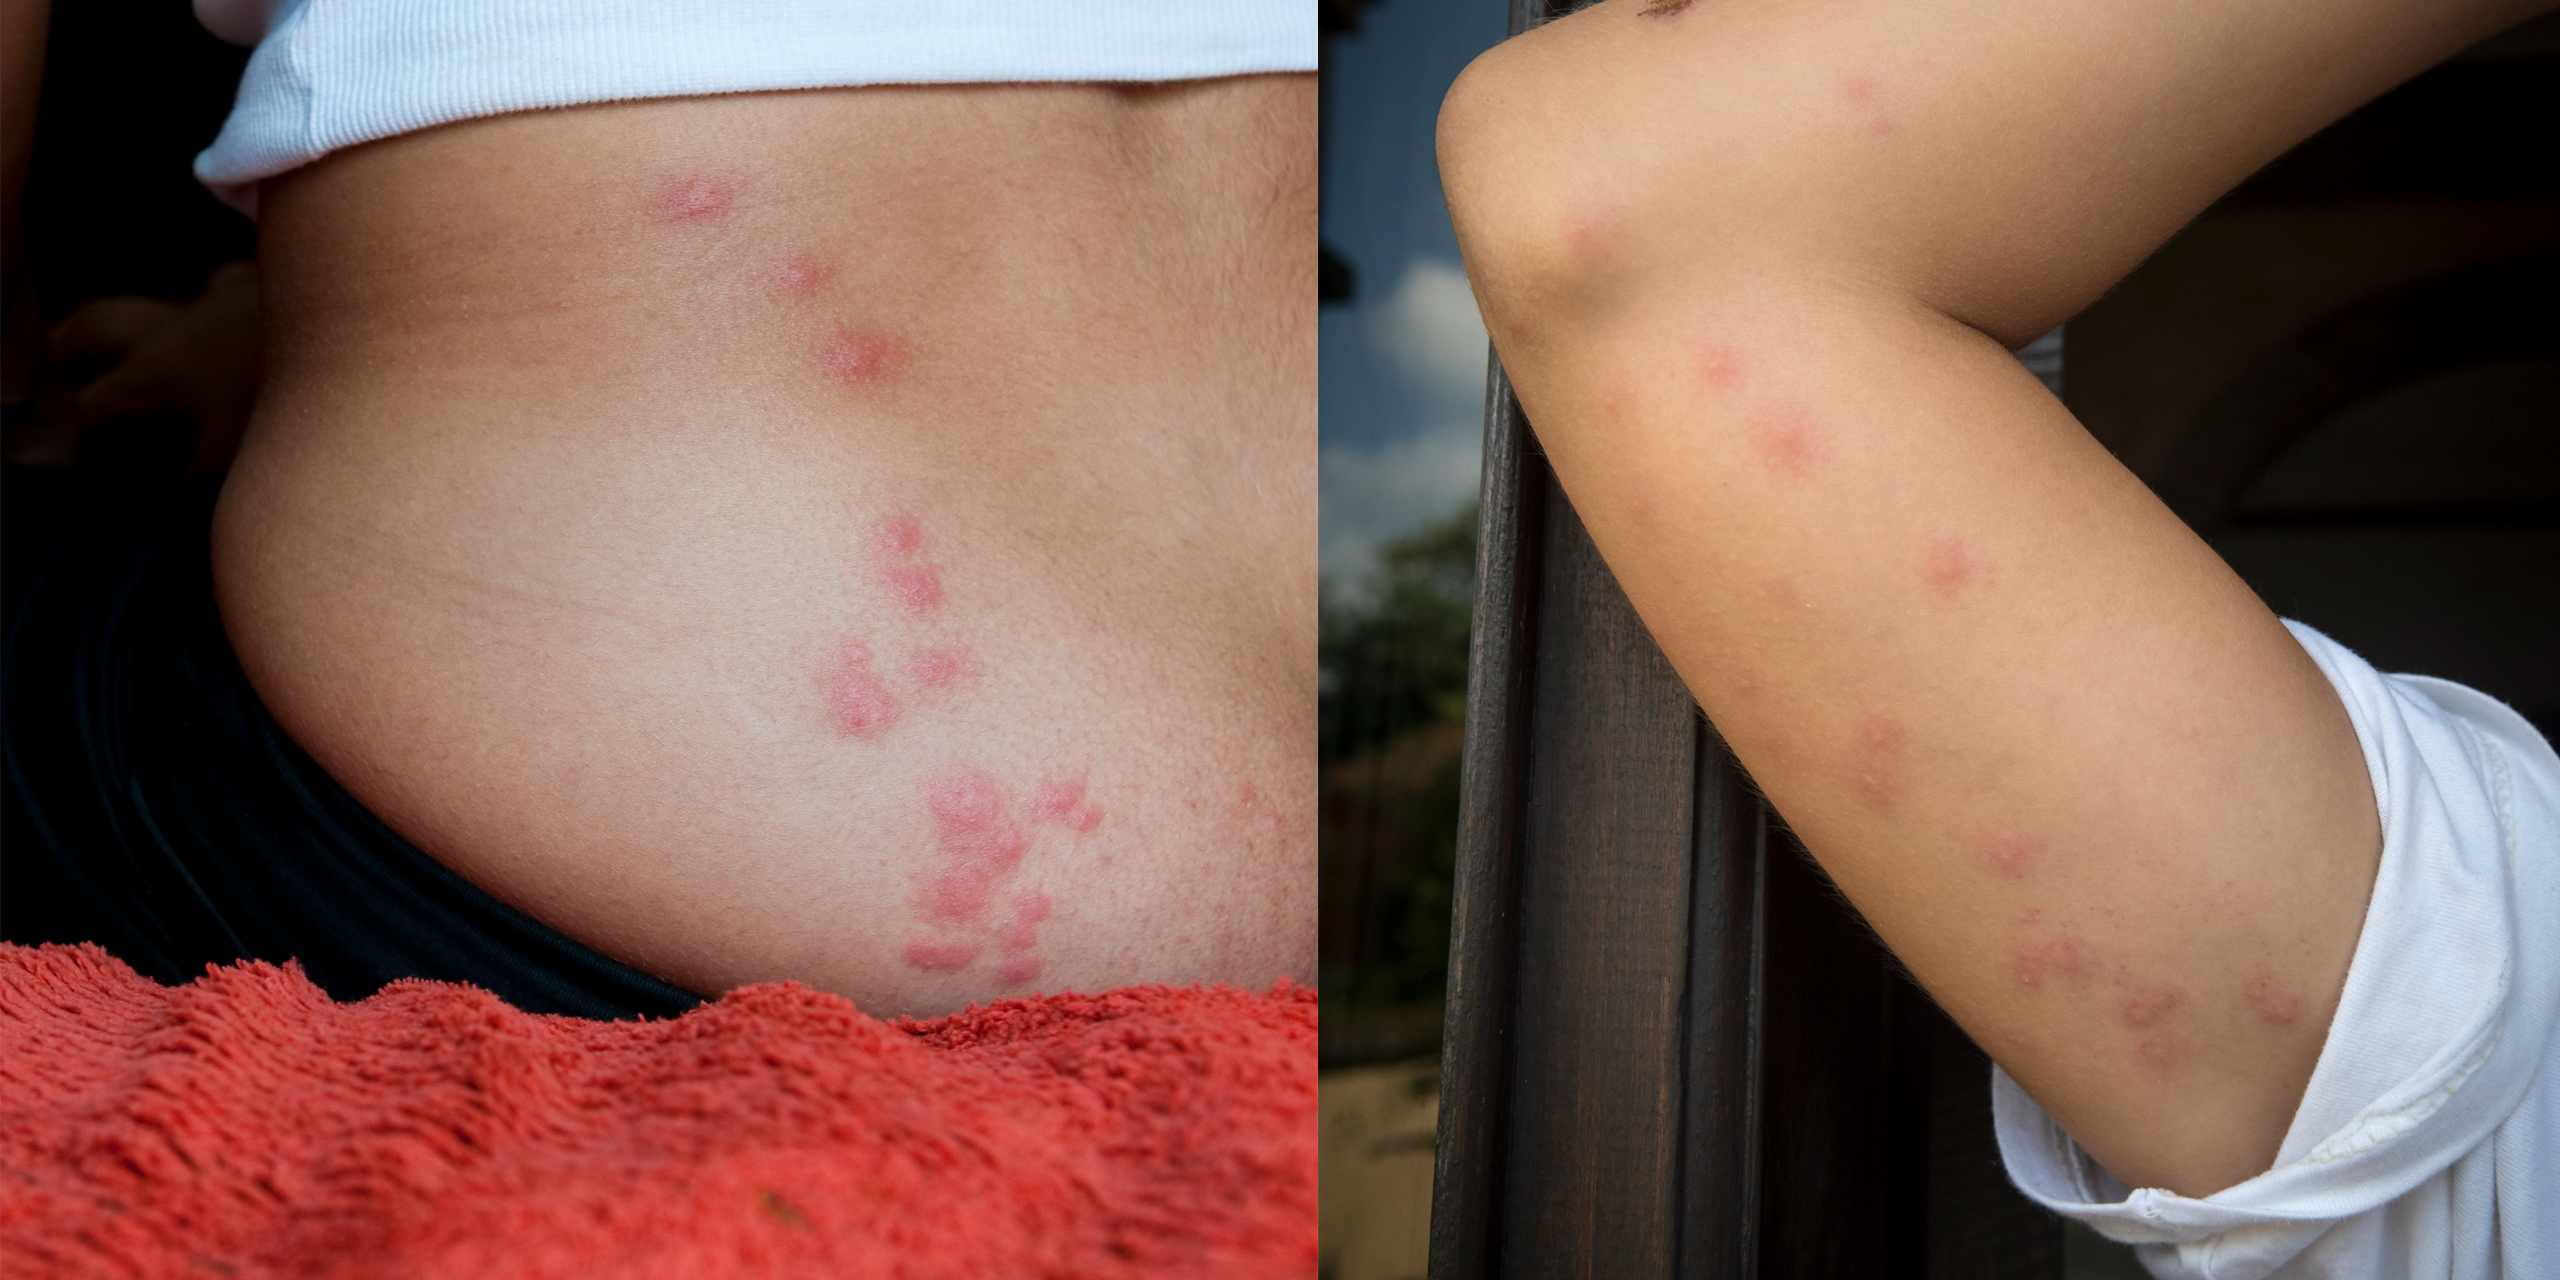 Bed Bug Bites Pictures Symptoms What Do Bed Bug Bites Look